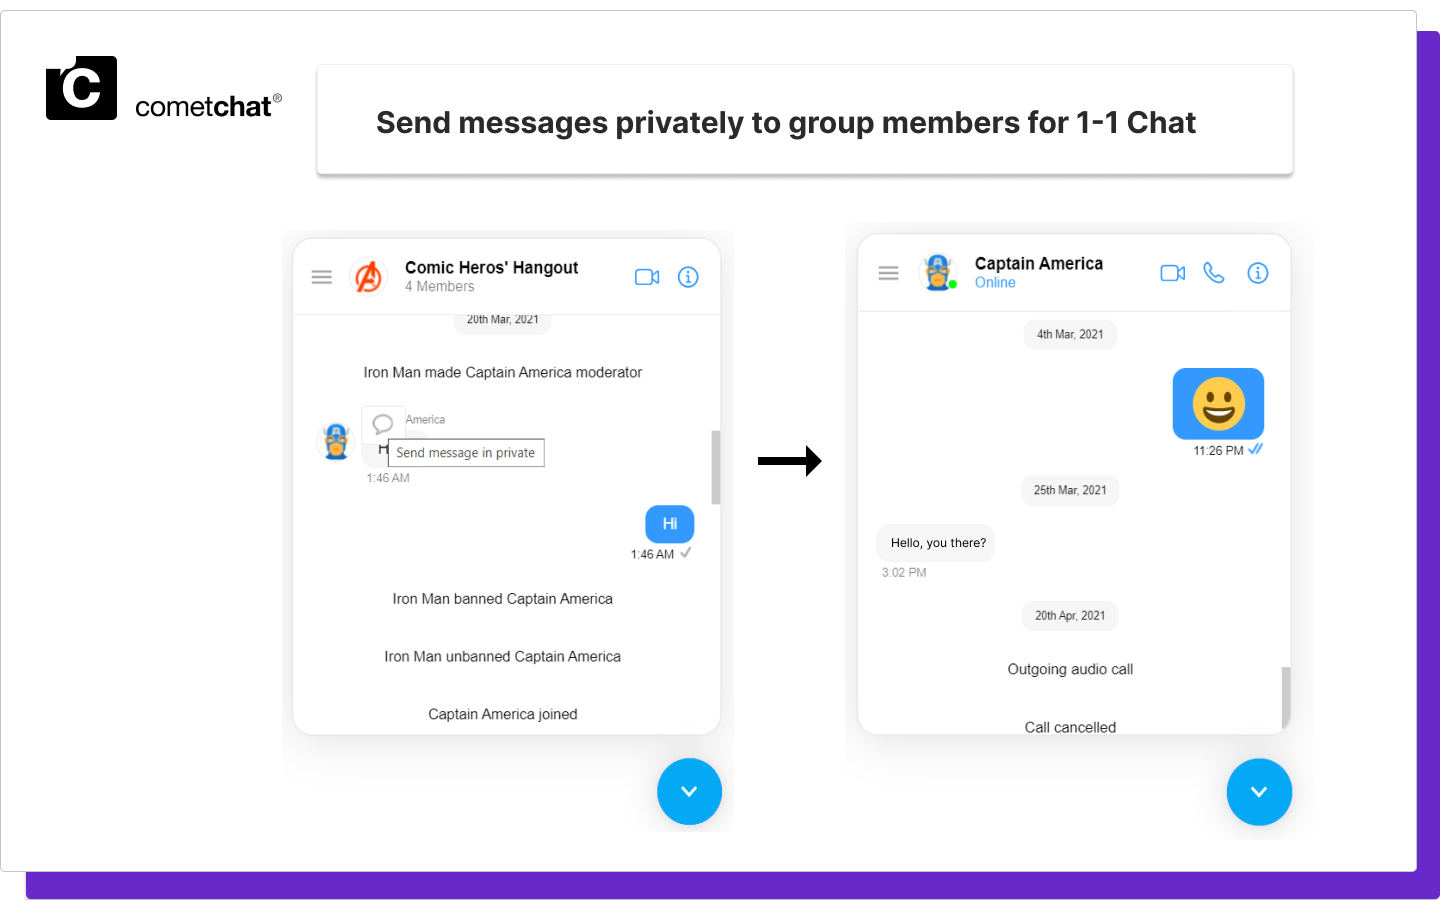 cometchat group hat features